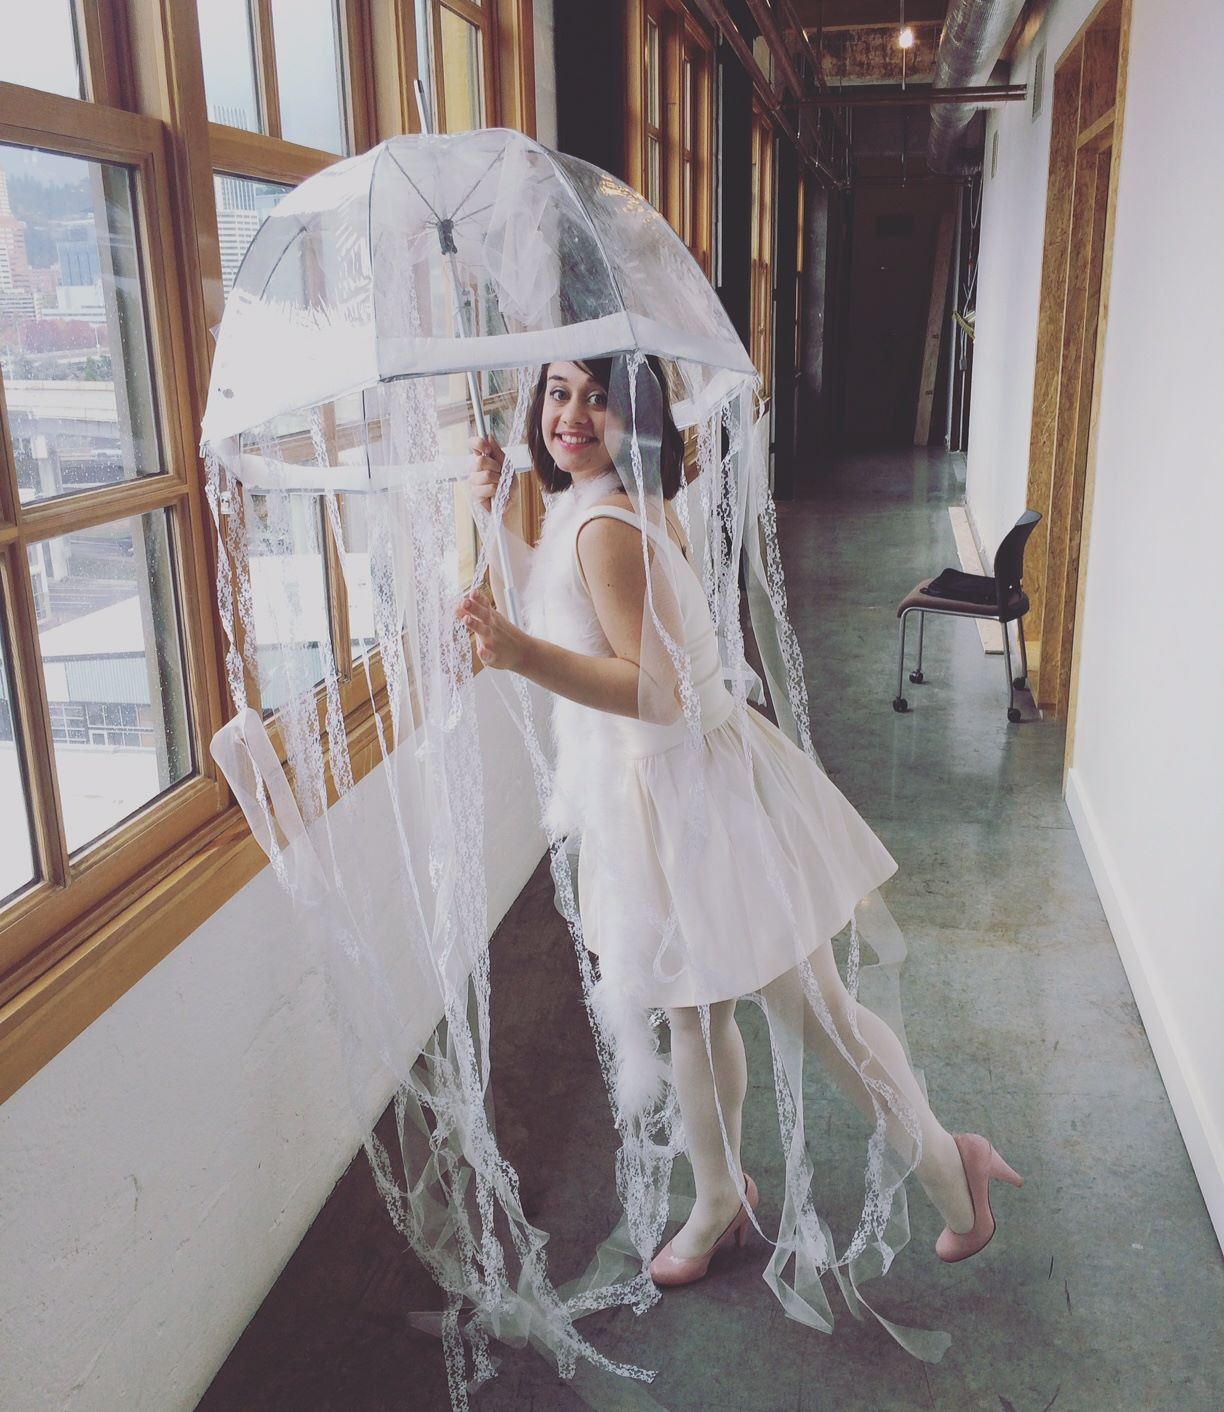 Jellyfish Costume DIY  LINDSTYLEFILES How to Make a Jellyfish Costume in 6 Steps